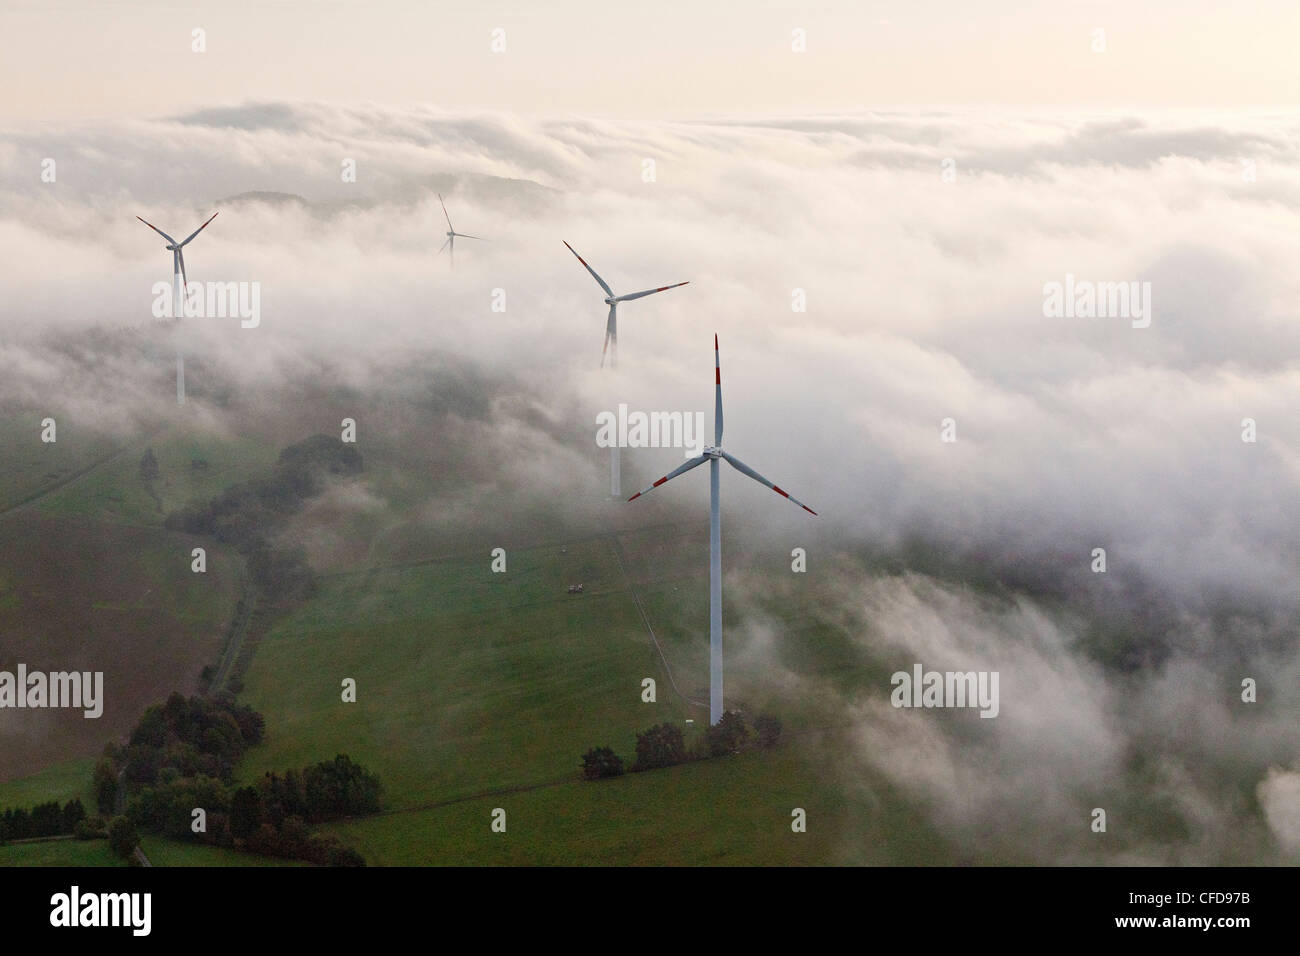 Aerial view of wind wheels at a wind turbine park in the fog, Eifel, Rhineland Palatinate, Germany, Europe - Stock Image